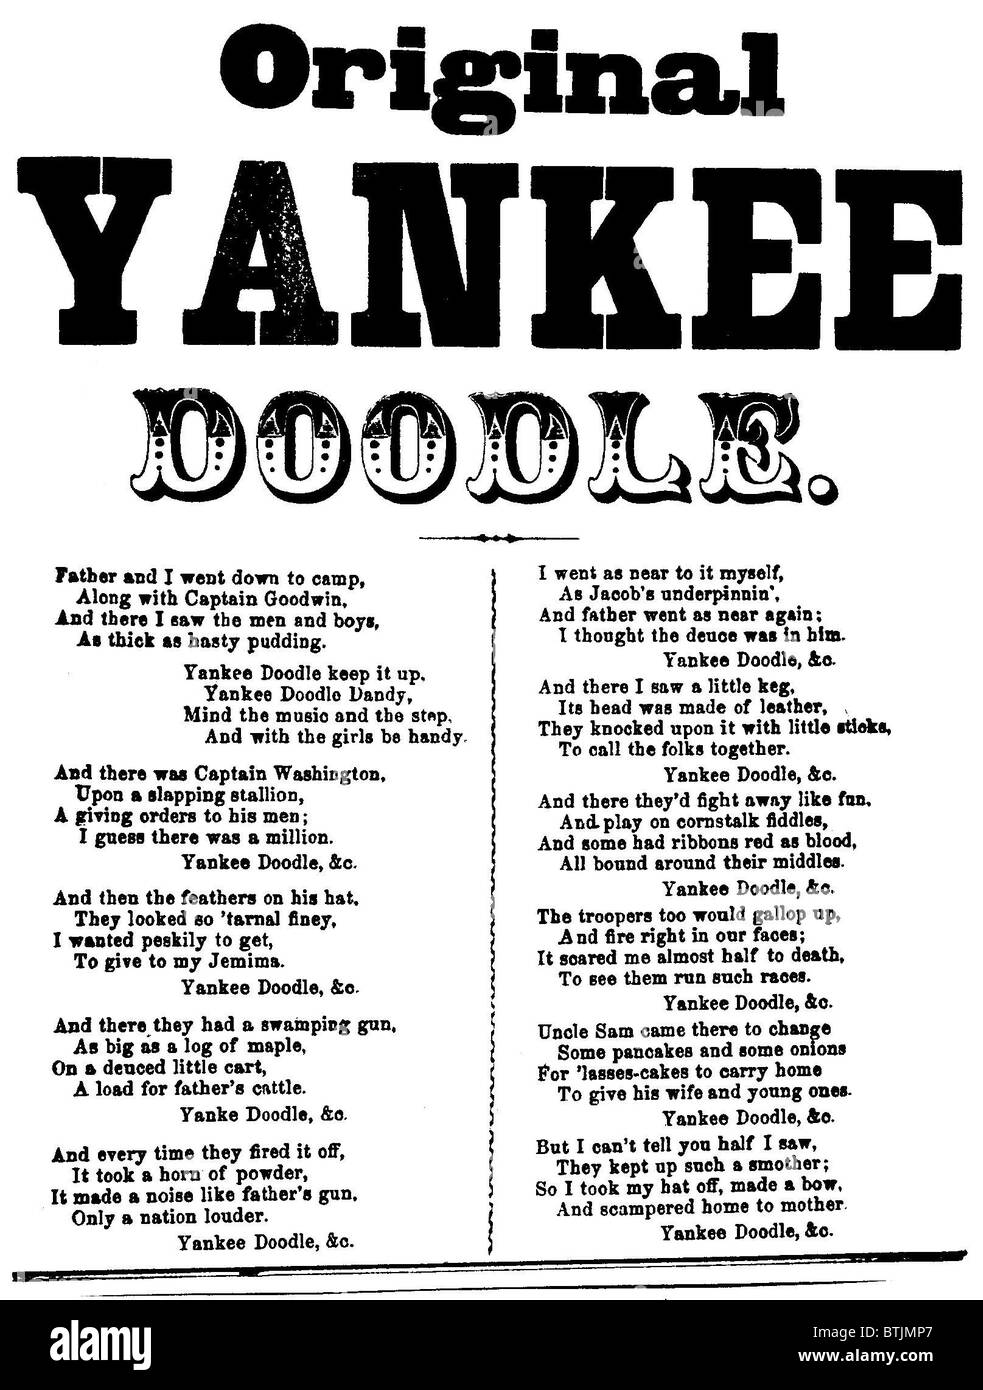 Yankee Doodle, patriotic American song lyric, feuille, circa 1880. Photo Stock